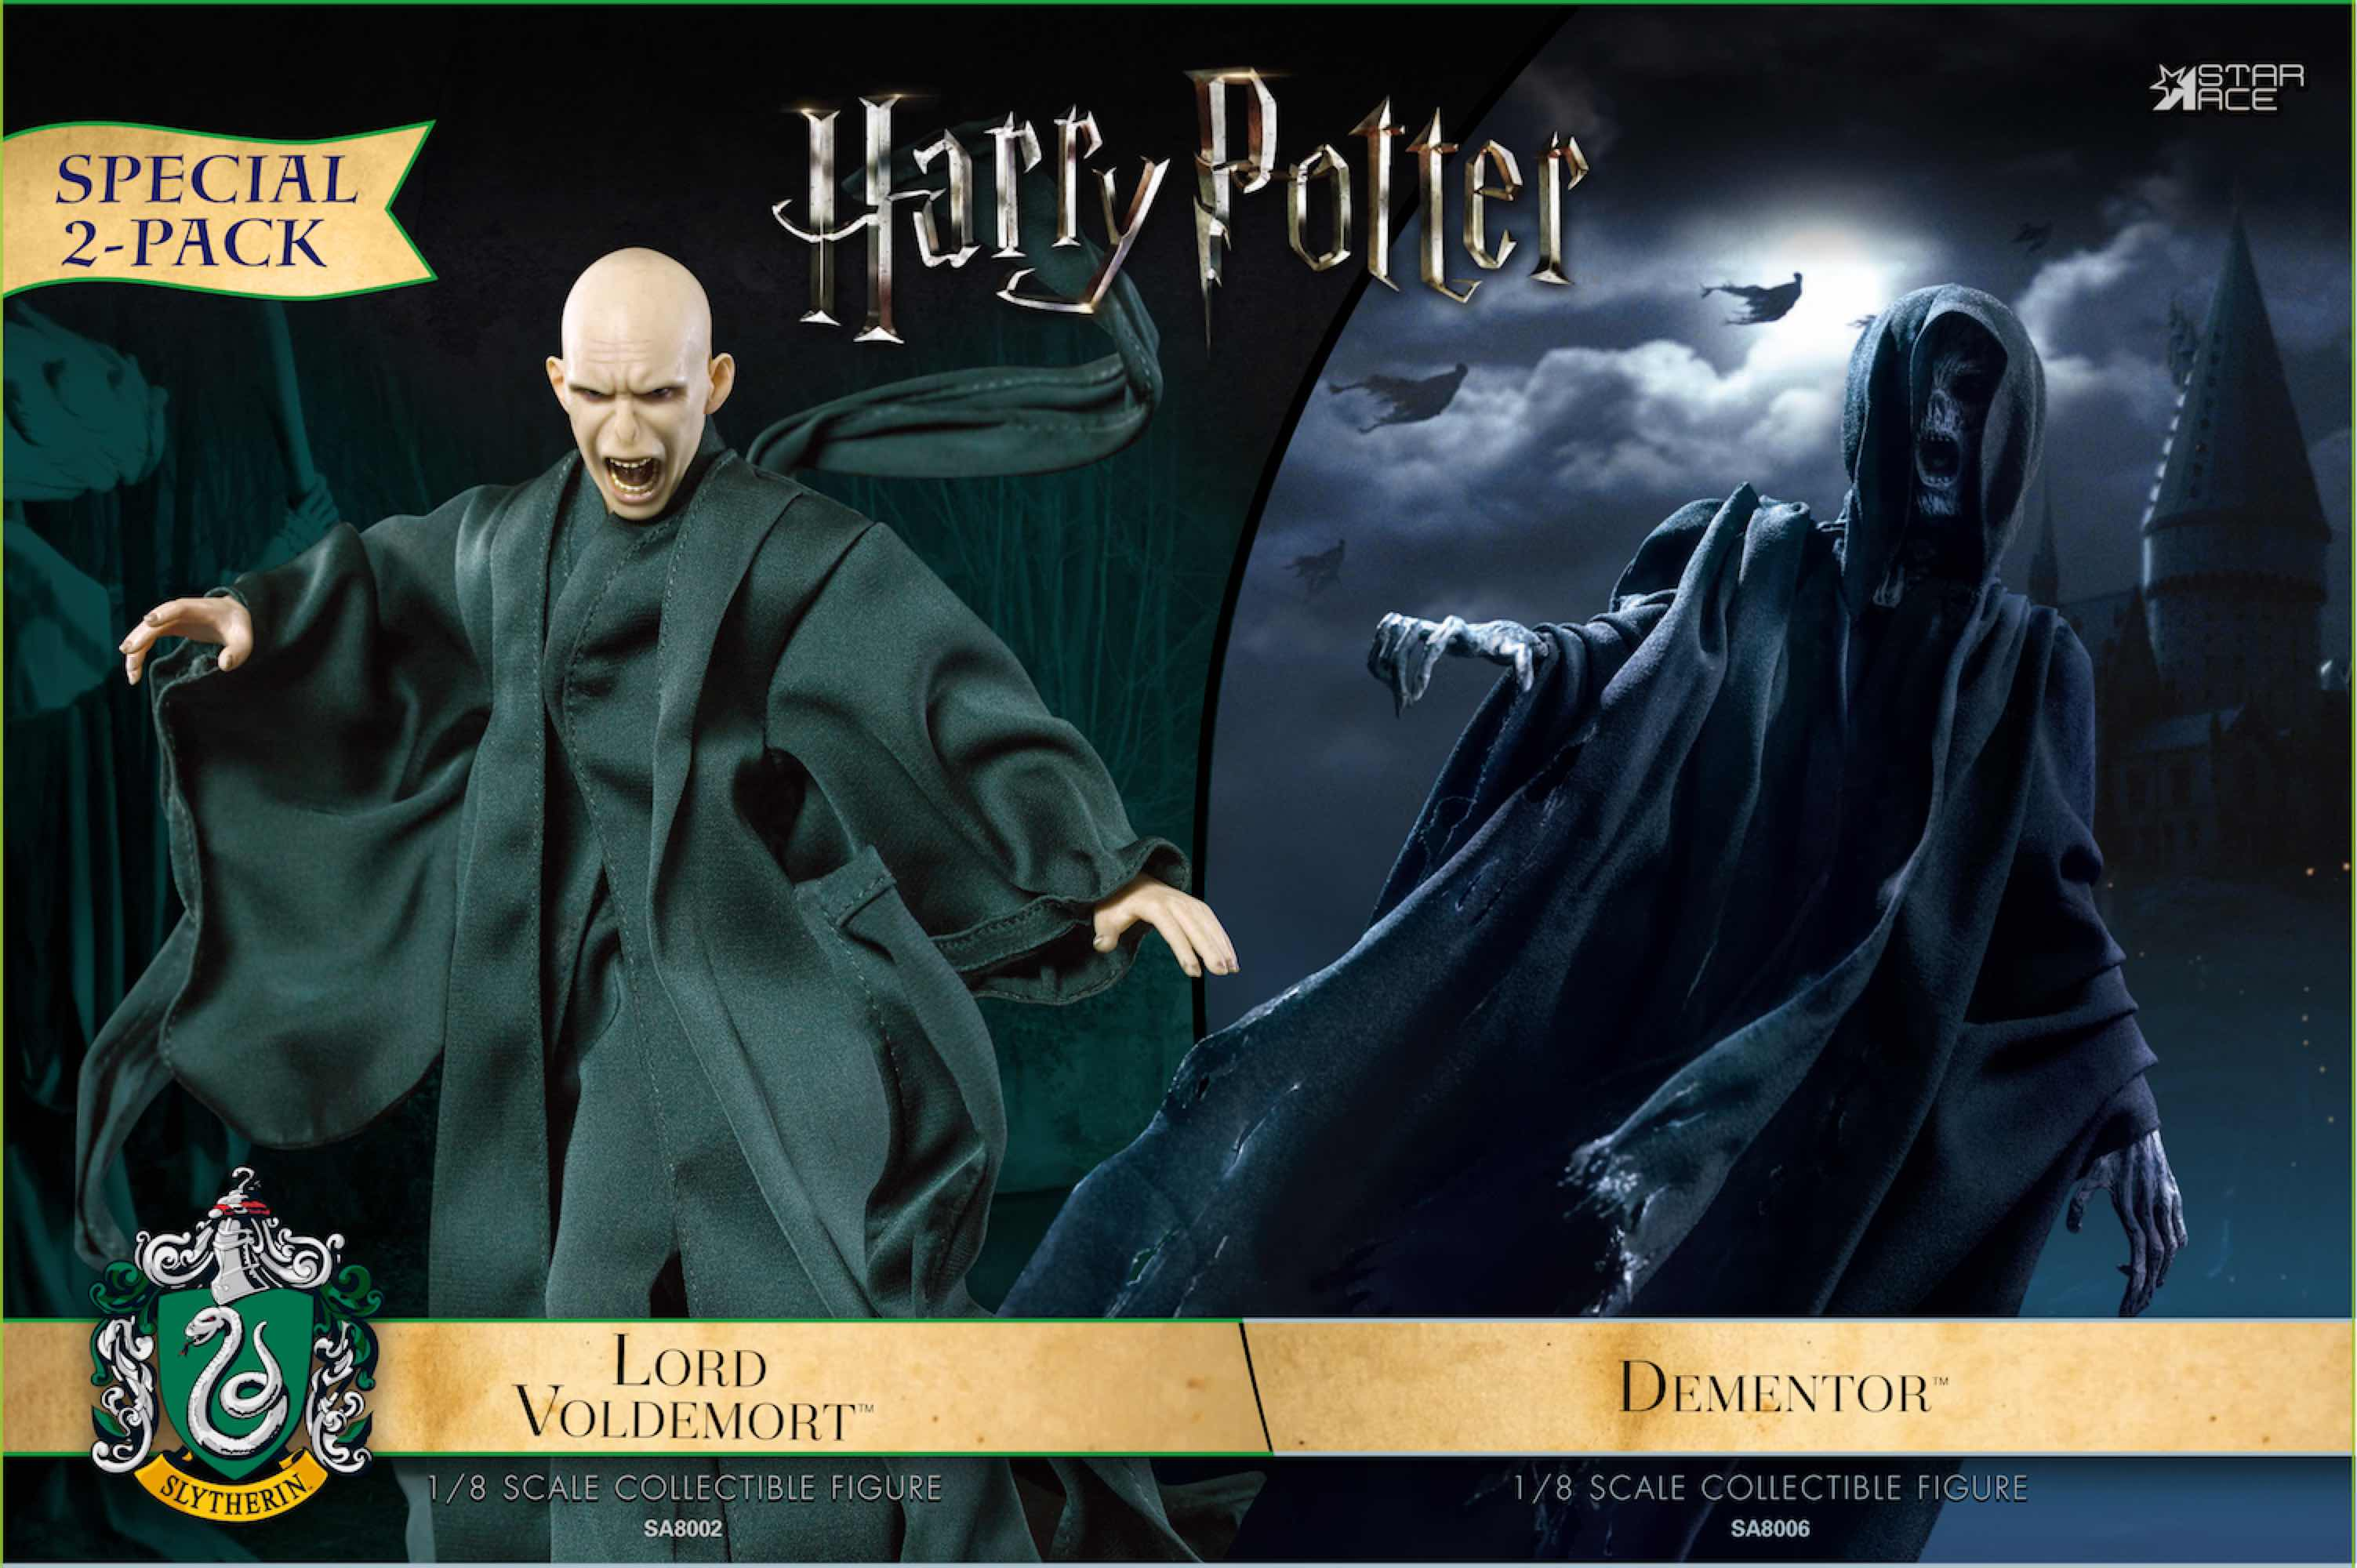 DEMENTOR & LORD VOLDEMORT FIGURA 16 CM HARRY POTTER STAR ACE